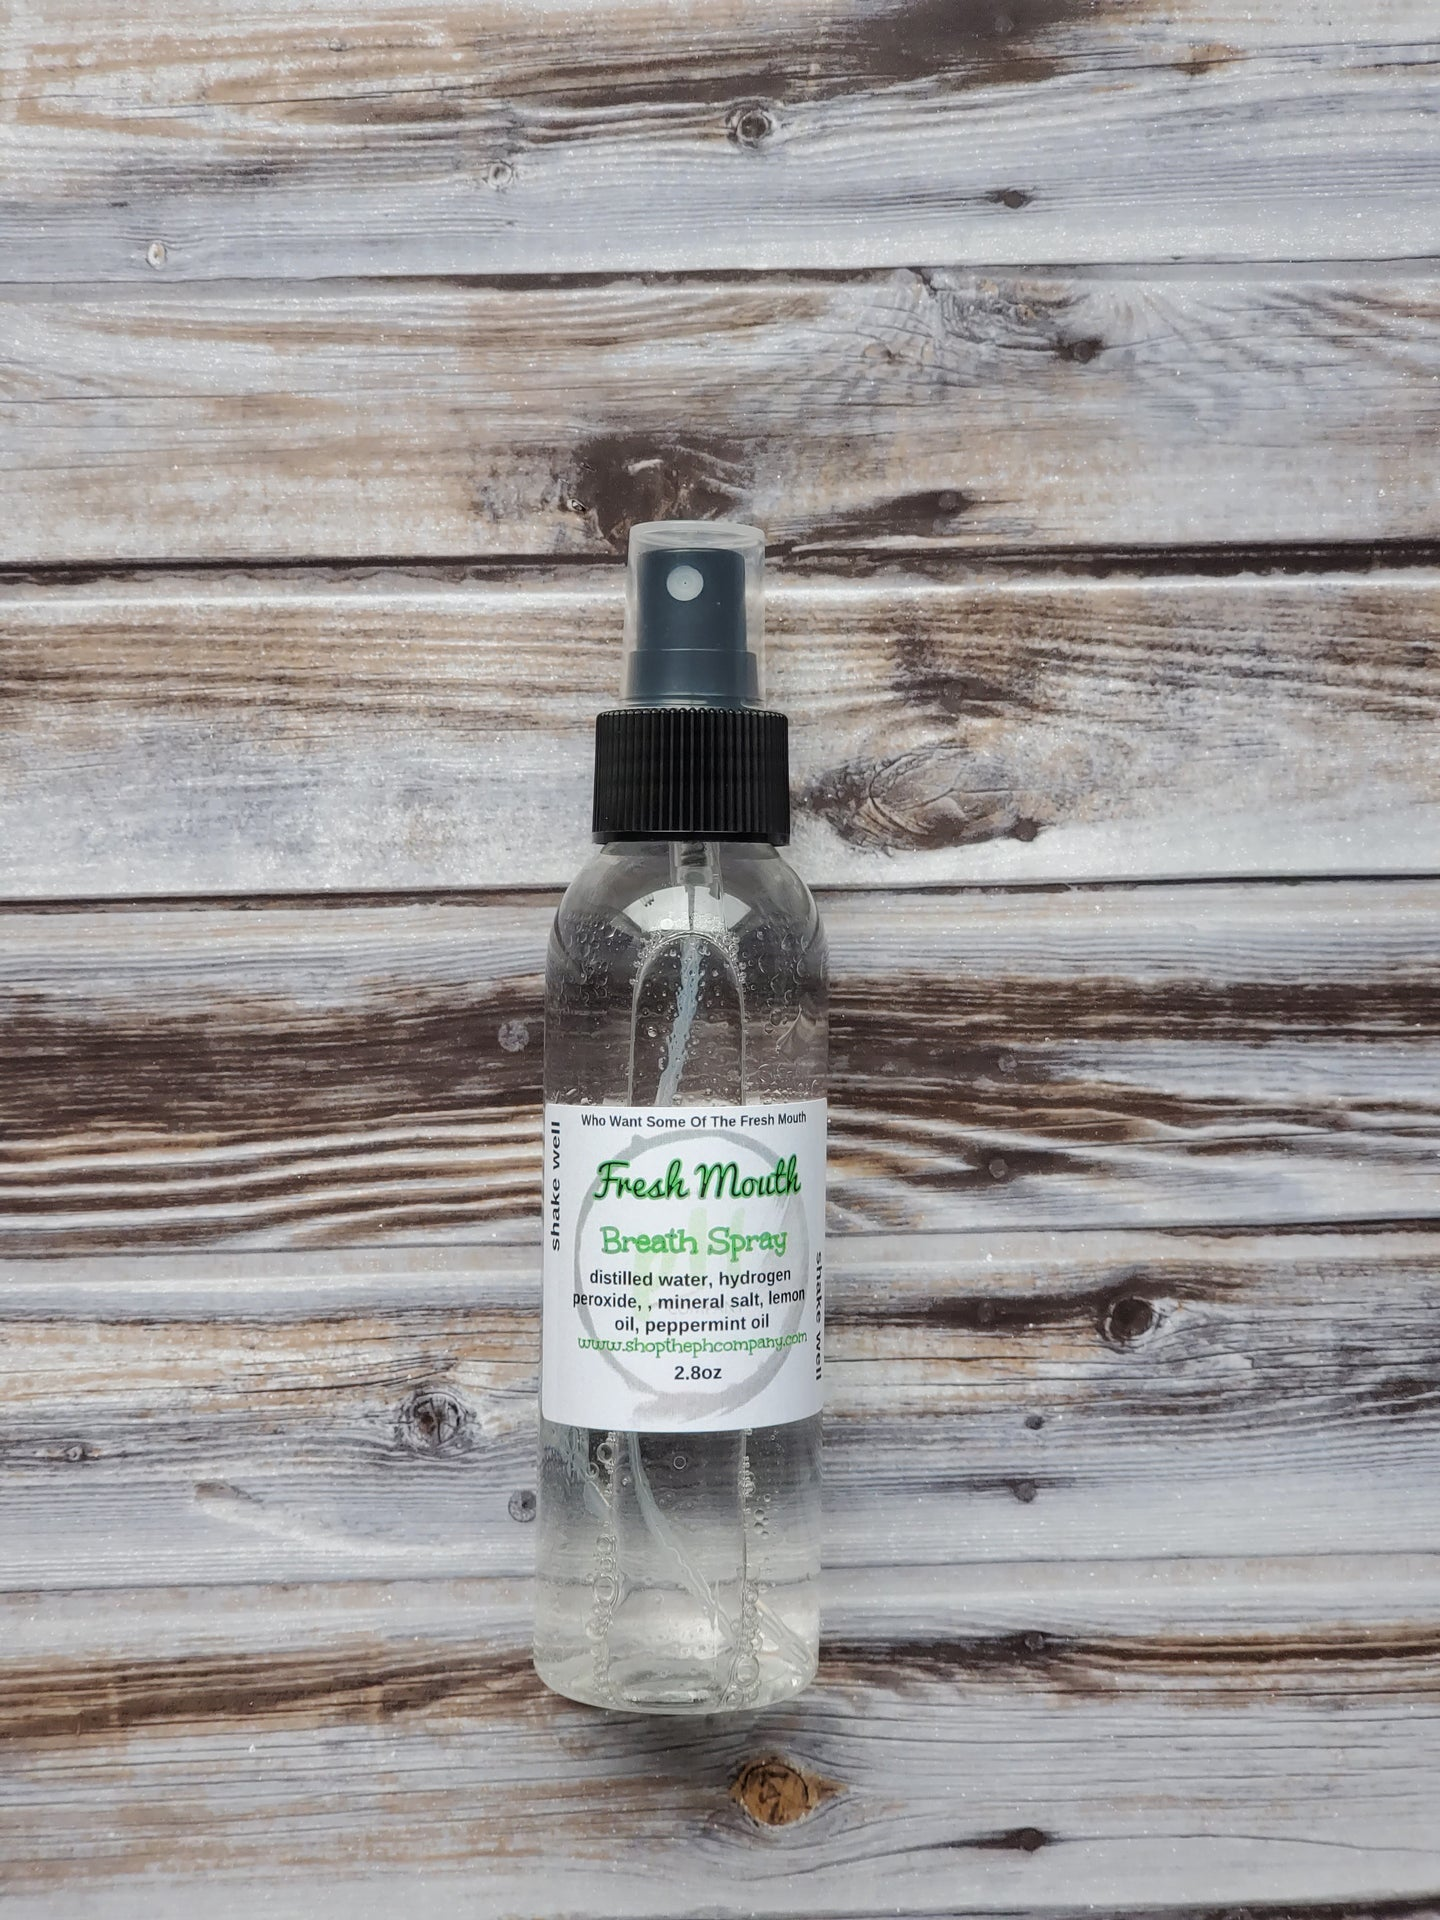 Fresh Mouth Breath Spray